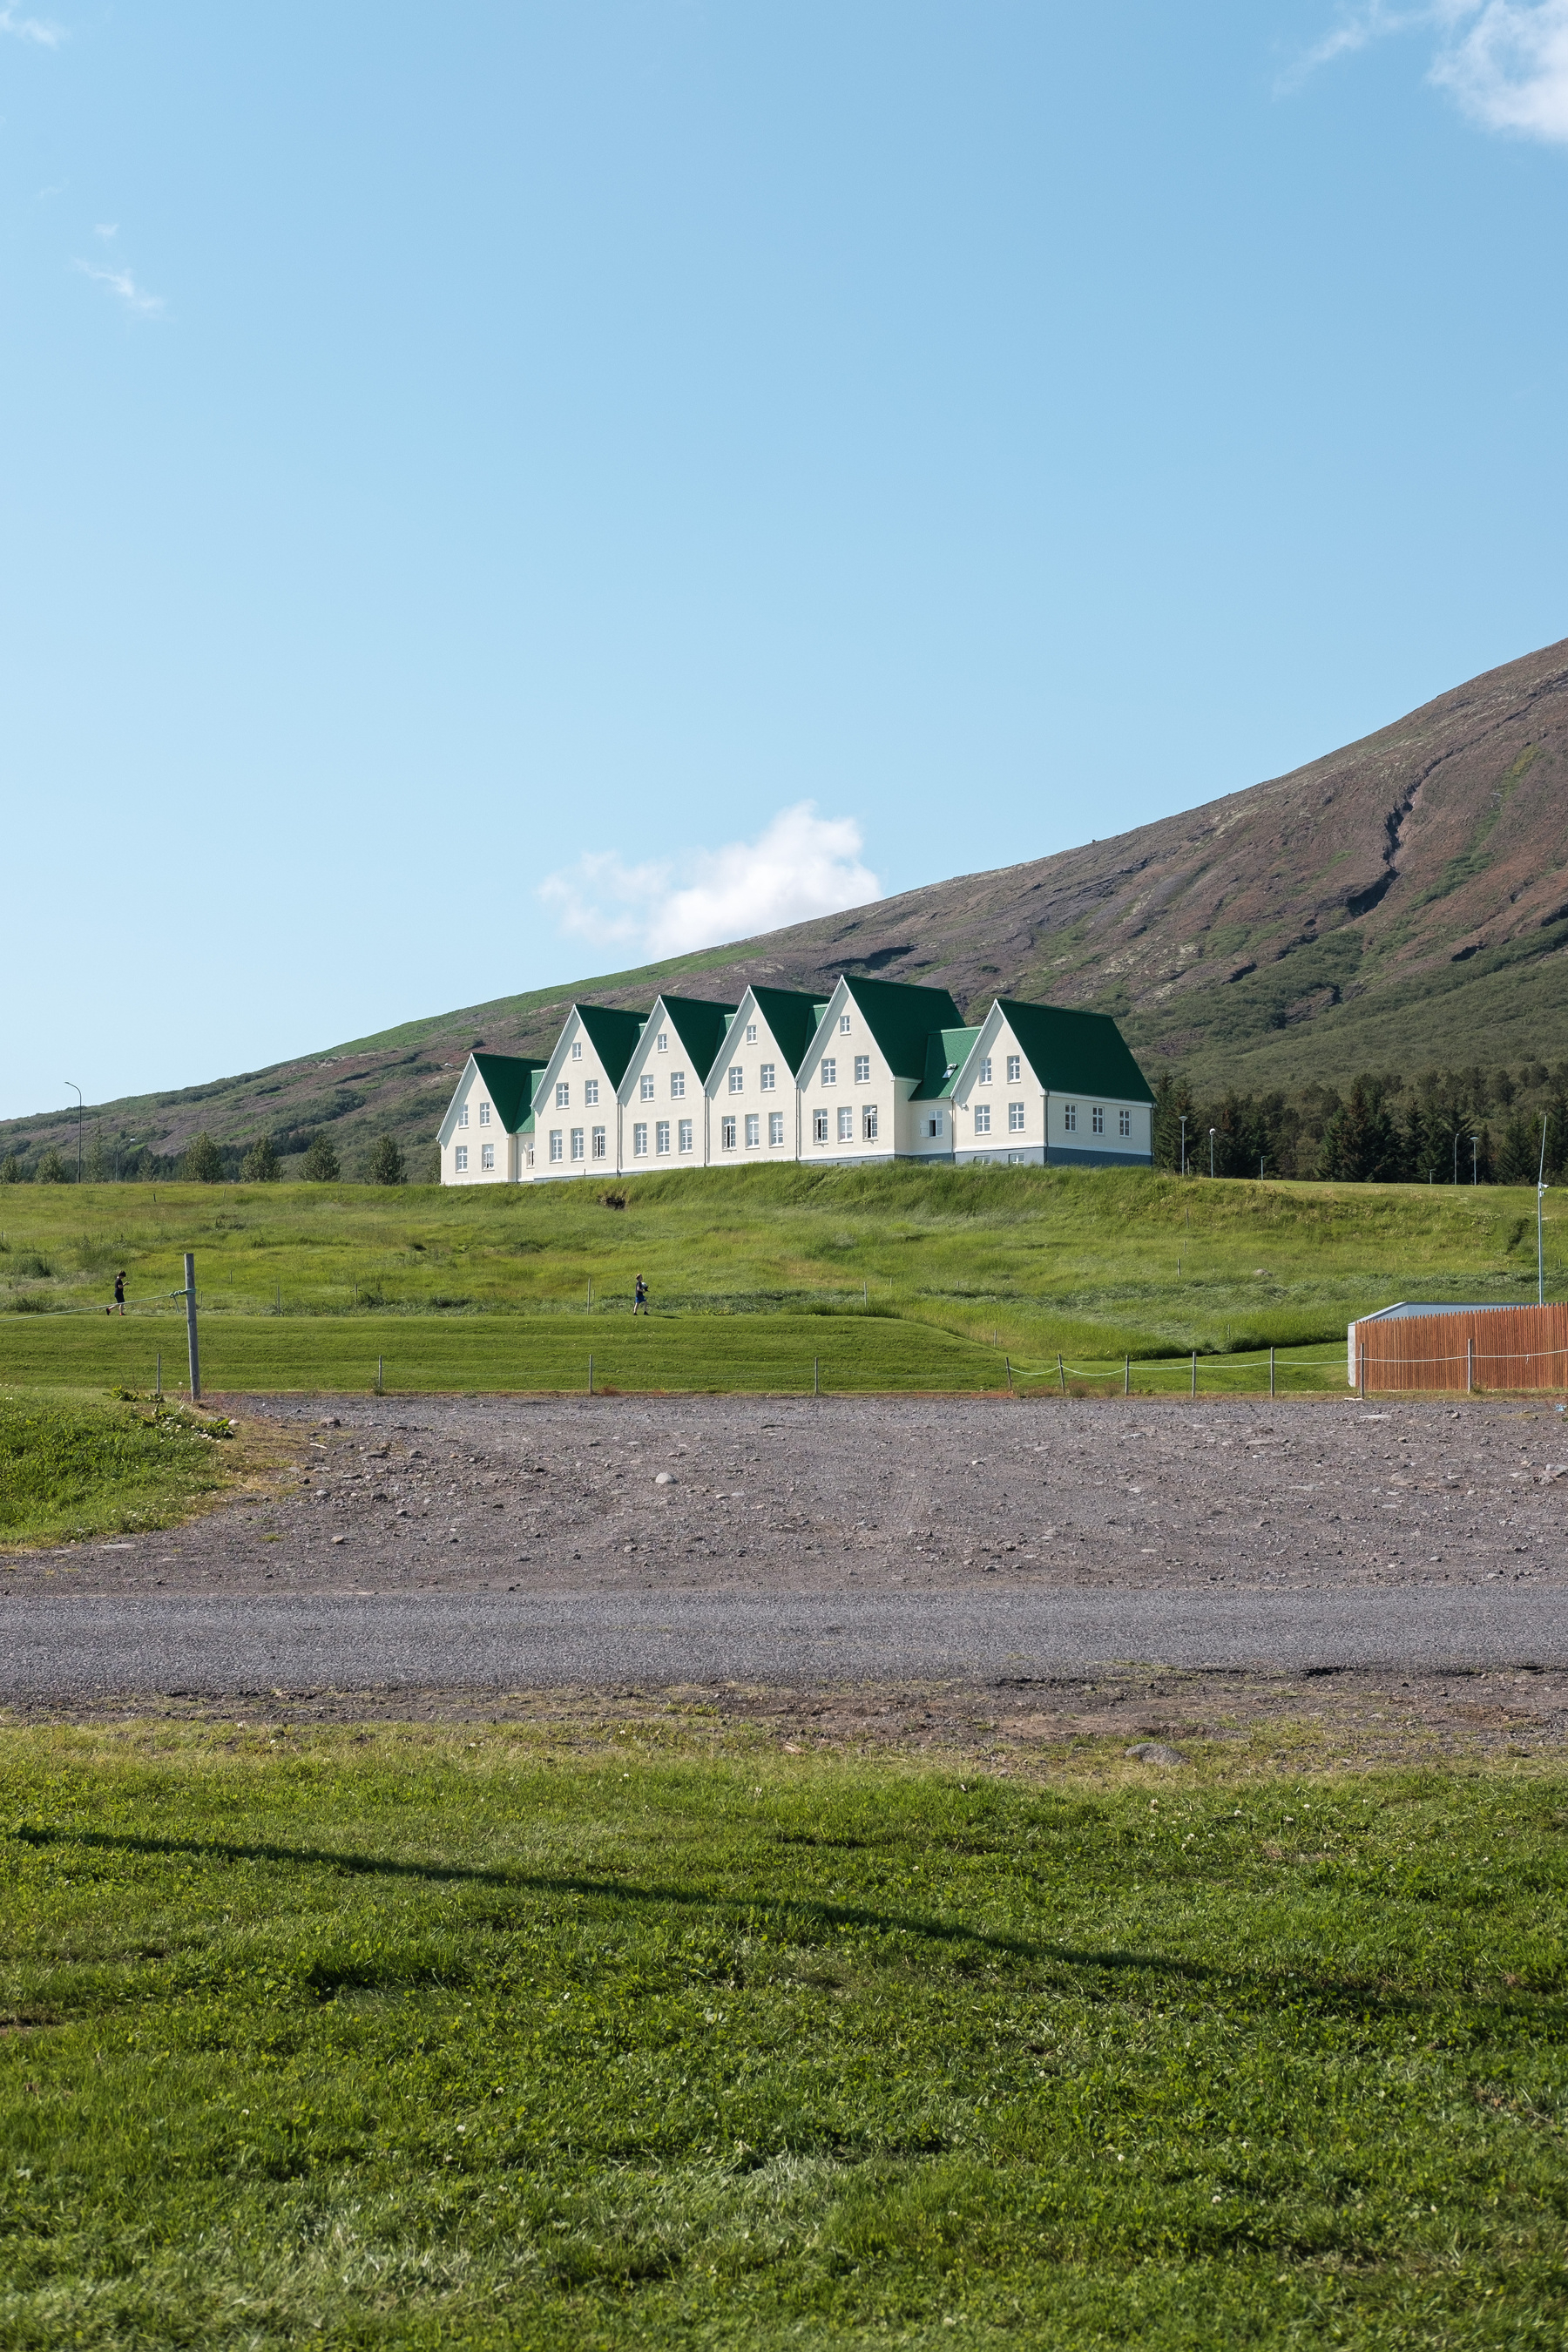 The old boarding school at Laugarvatn, now a hotel